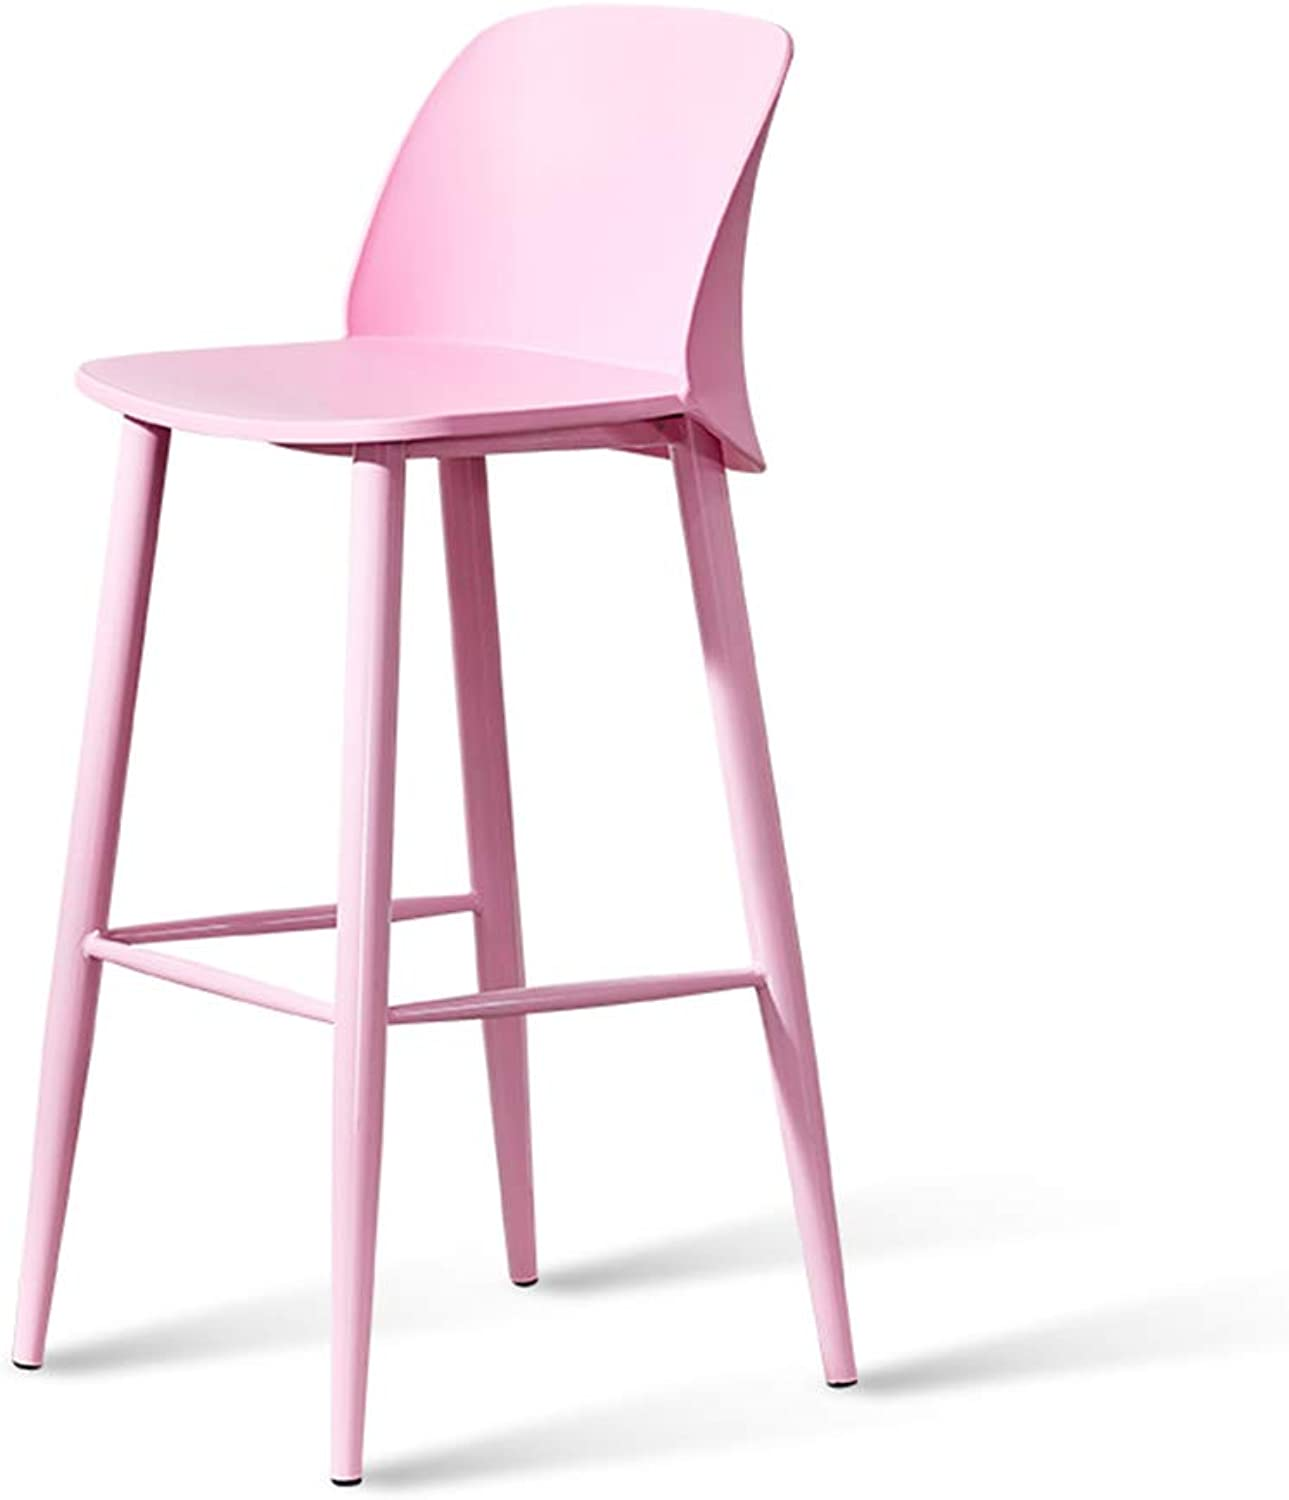 Nordic Bar Stool Pink Minimalist Style Metal Legs Design Kitchen Restaurant Bar Stool Chair with Backrest (Sitting Height  740 MM)